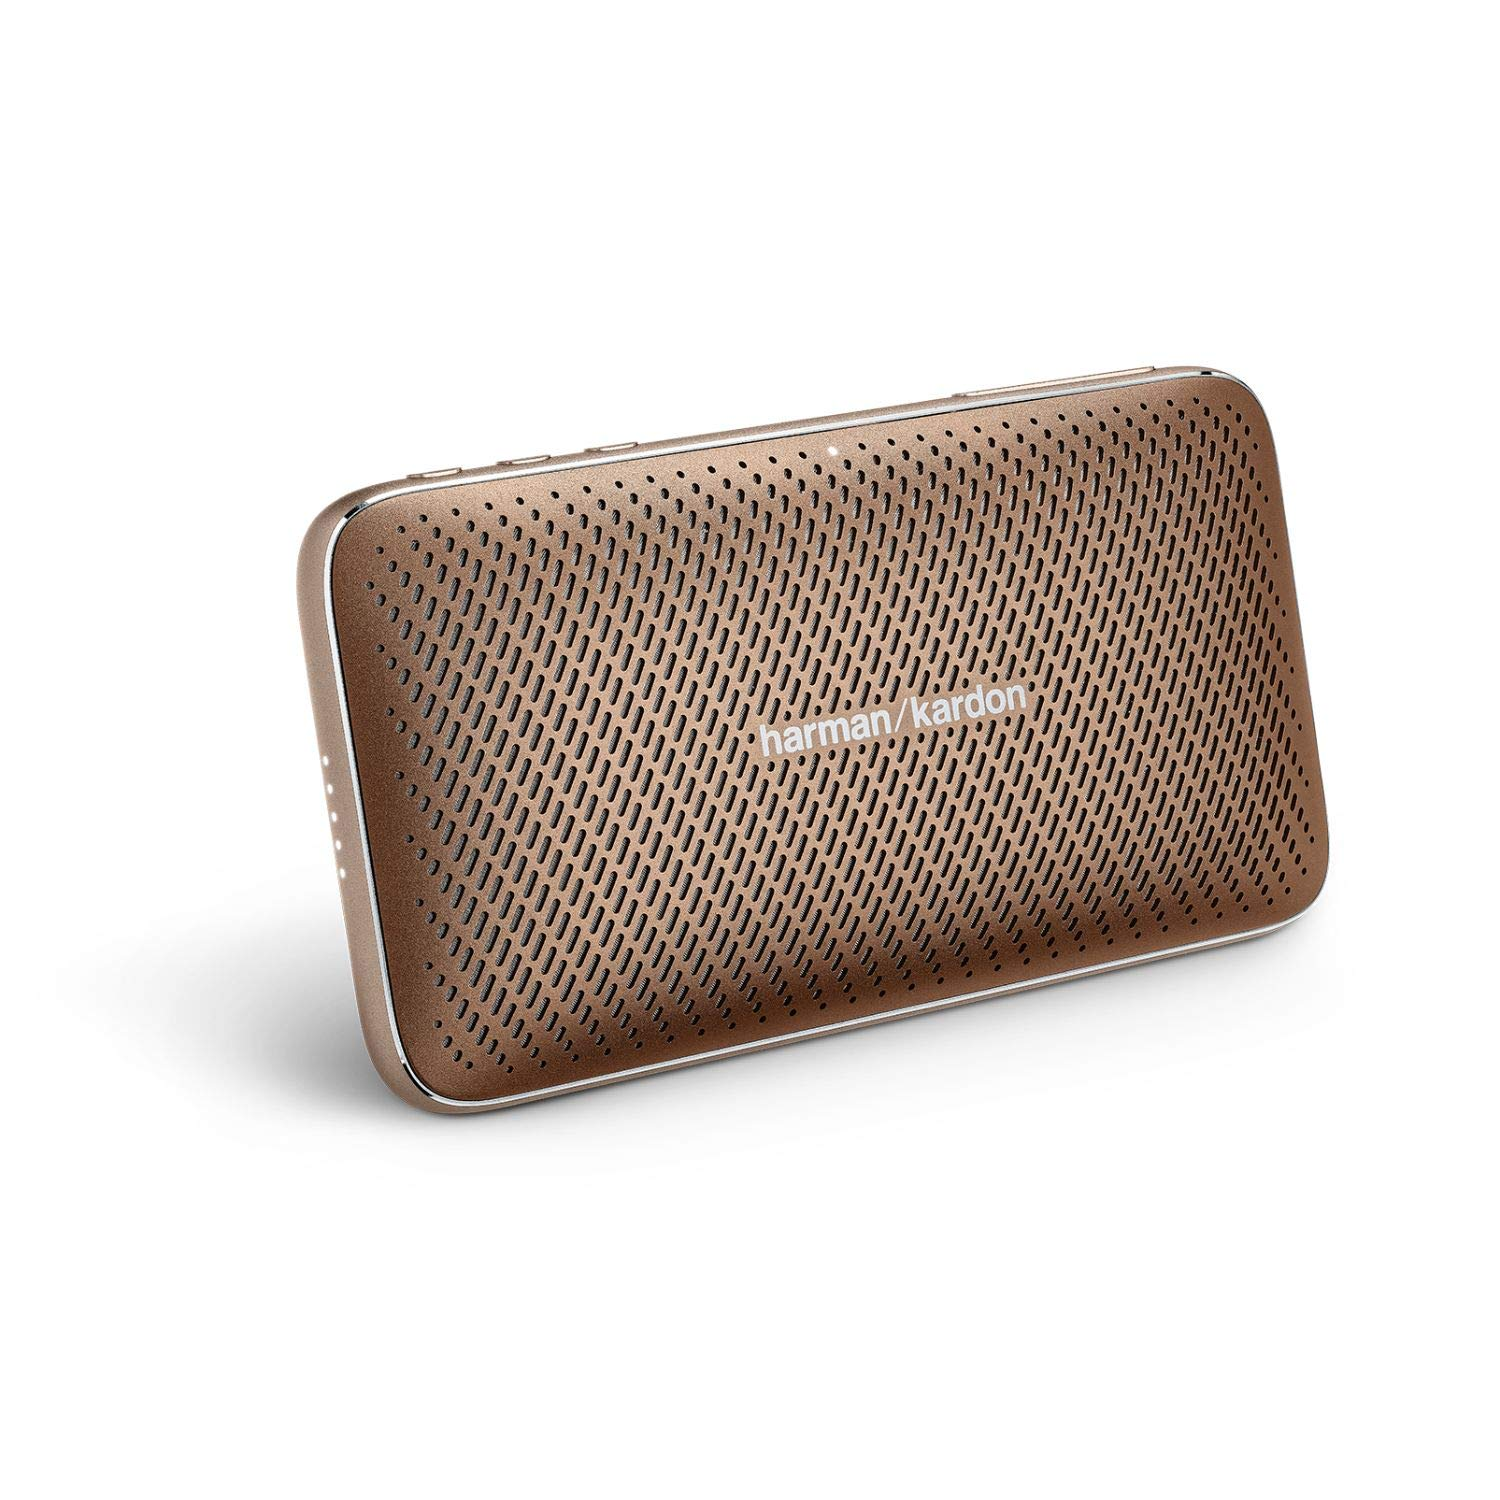 Harman Kardon Esquire Mini 2 Portable Wireless Speaker (Brown)